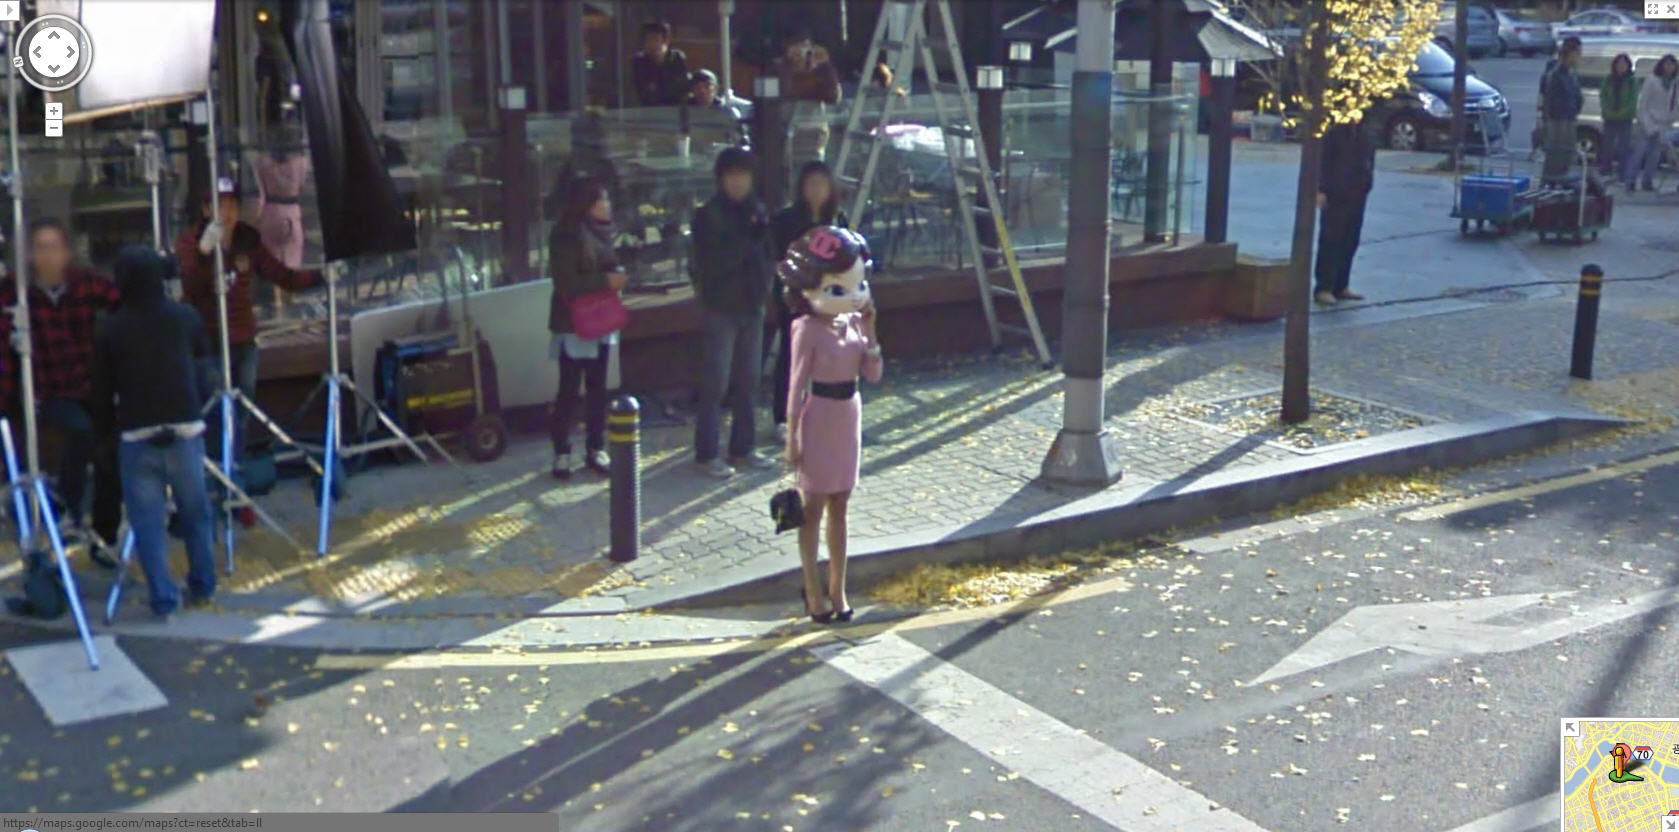 google-street-view-captures-a-girl-being-filmed-in-korea--is-she-real